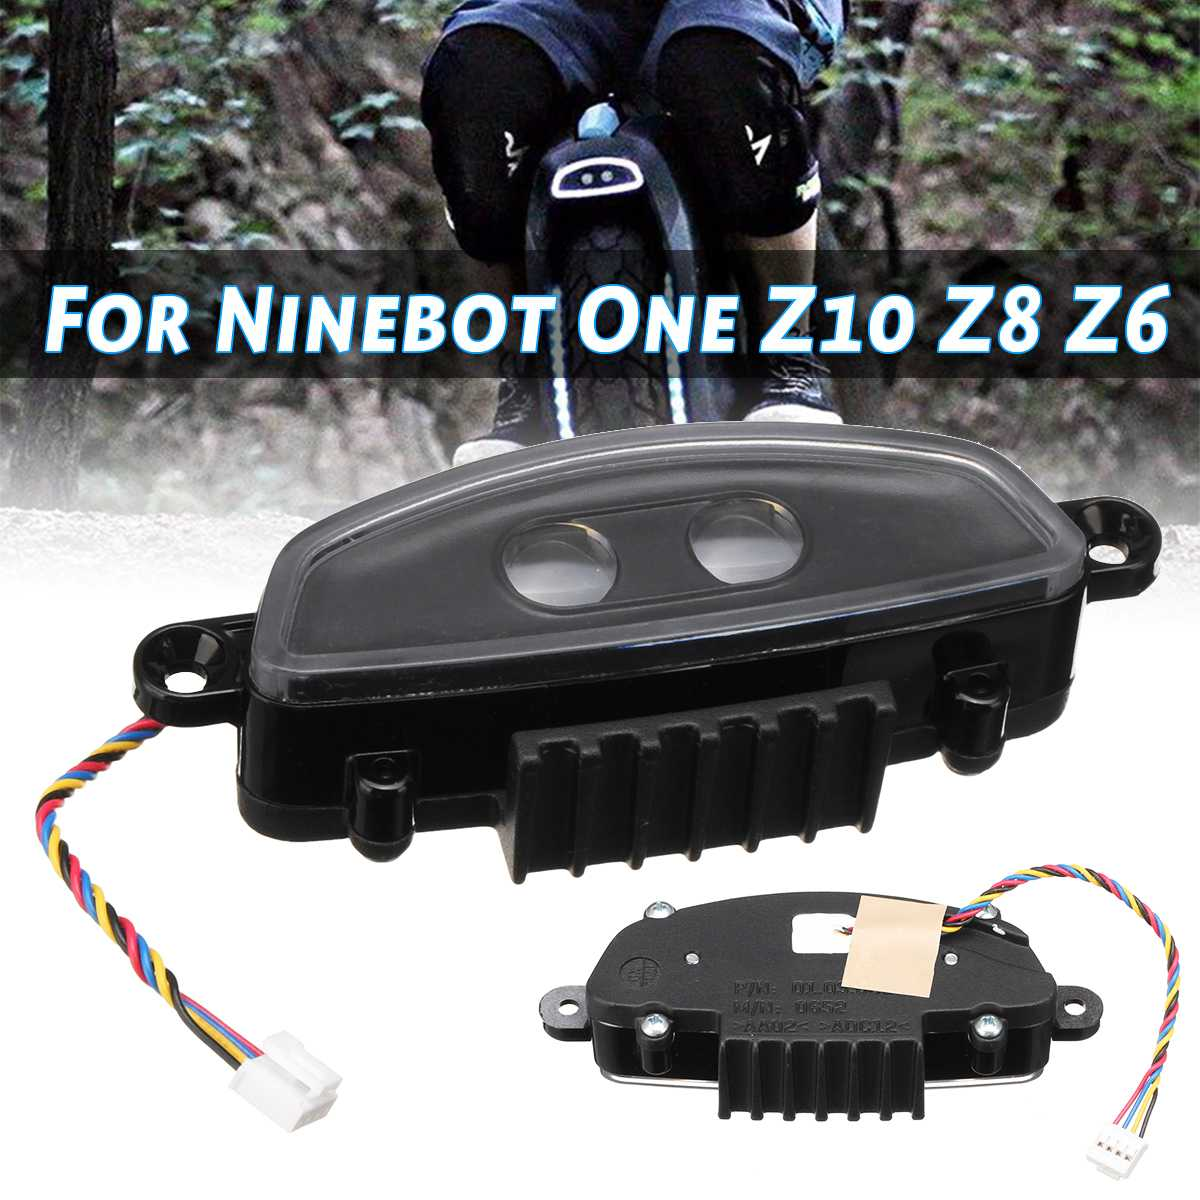 Realistic New Z10 Front Light Original For Ninebot Z10 Front Light Rear Light Spare Parts For Ninebot One Z10 Z8 Z6 Electric Unicycle To Prevent And Cure Diseases Roller Skates, Skateboards & Scooters